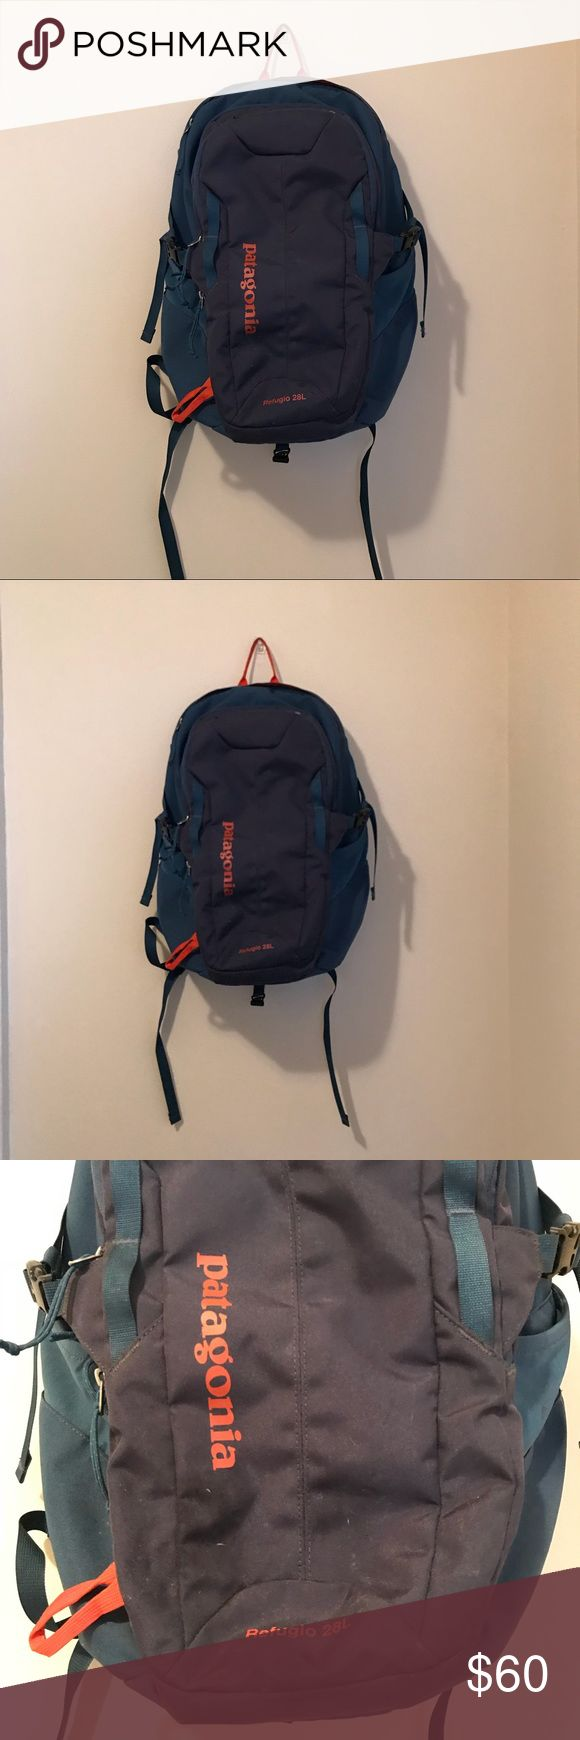 Patagonia backpack Patagonia Refugio backpack 28L. Two shades of blue with orange accents. A couple marks on front bottom near name, as seen in photo.....although I imagine they could be wiped off. Otherwise in excellent condition!! 4 zippered pockets (2 Large, 1 Medium w many organizing pockets (pictured) and 1 small on top). Patagonia Bags Backpacks